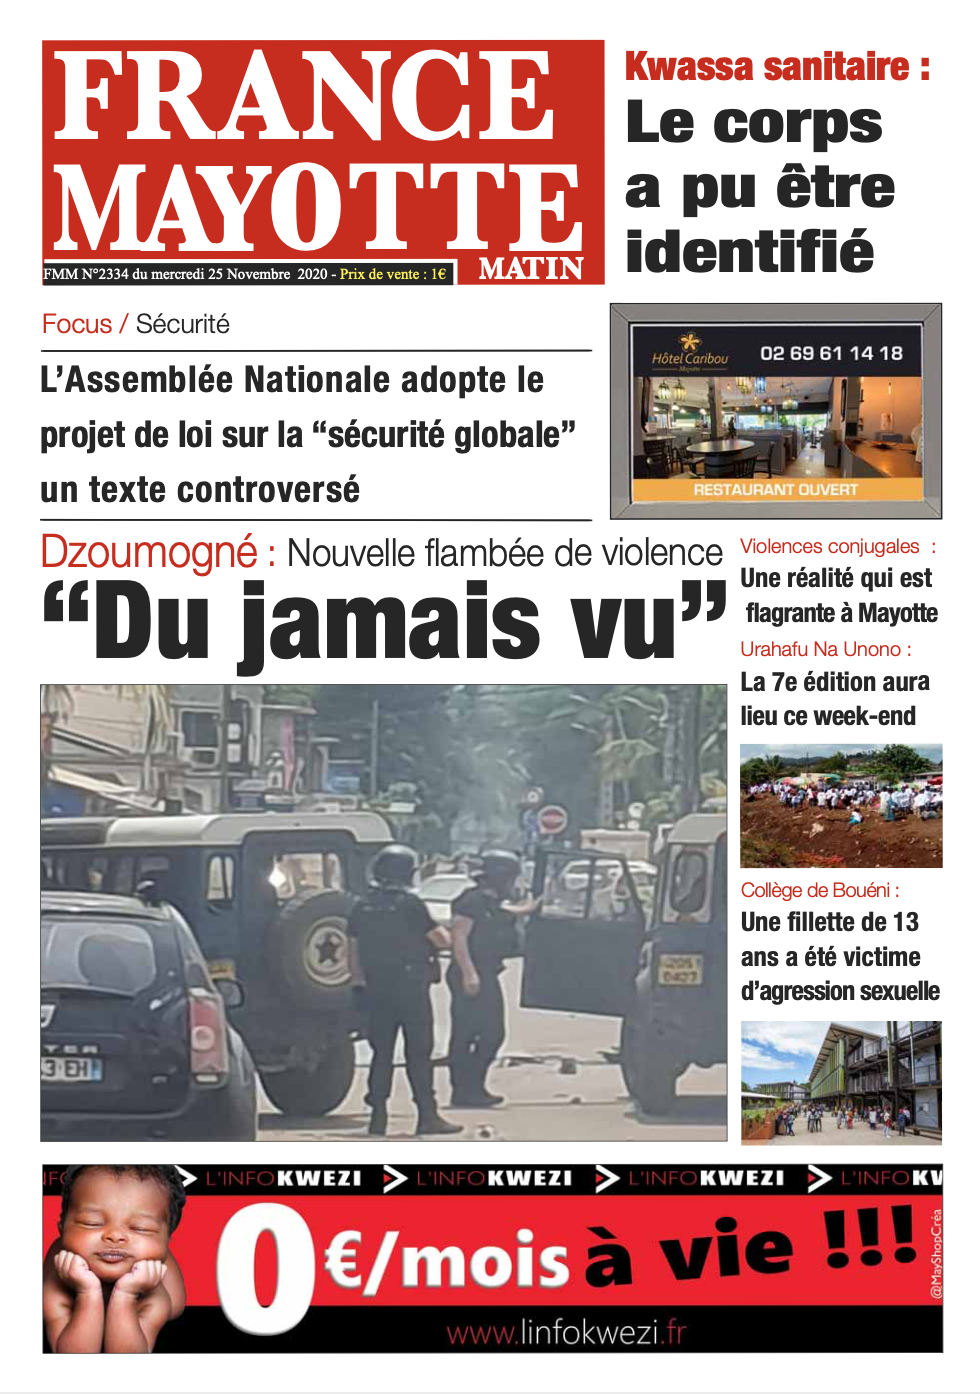 France Mayotte Mercredi 25 novembre 2020